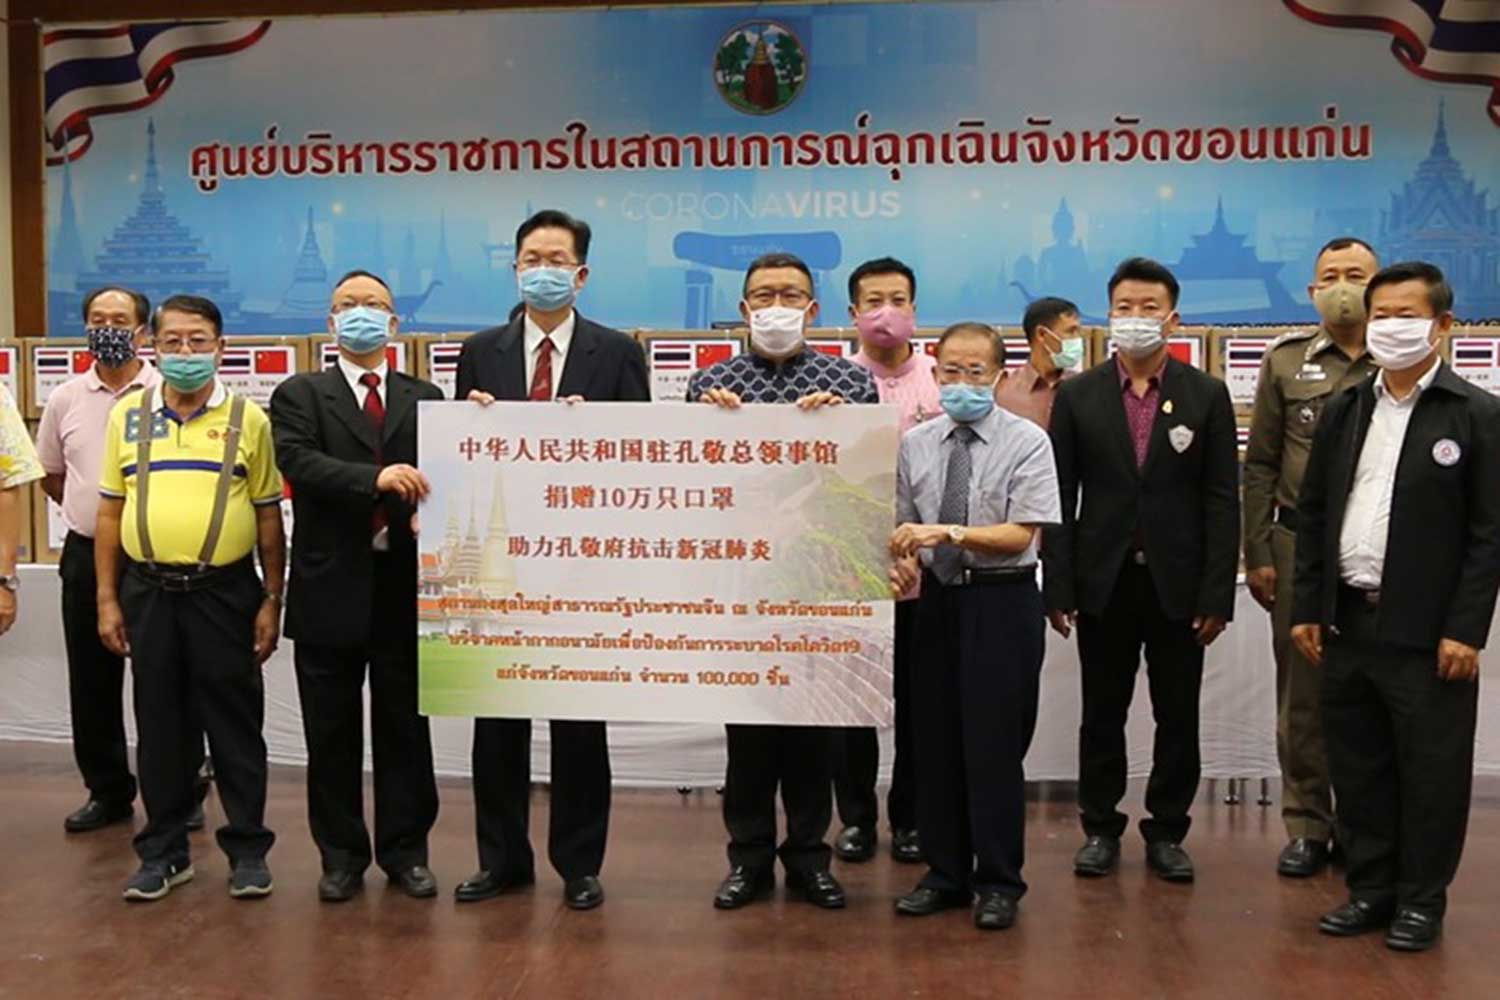 A ceremony is held at Khon Kaen's City Hall on Tuesday when Liao Junyun, the consular-general at the Chinese Consulate in the province, handed over 100,000 face masks from China to the Khon Kaen governor. (Photo: Chakkrapan Nathanri)